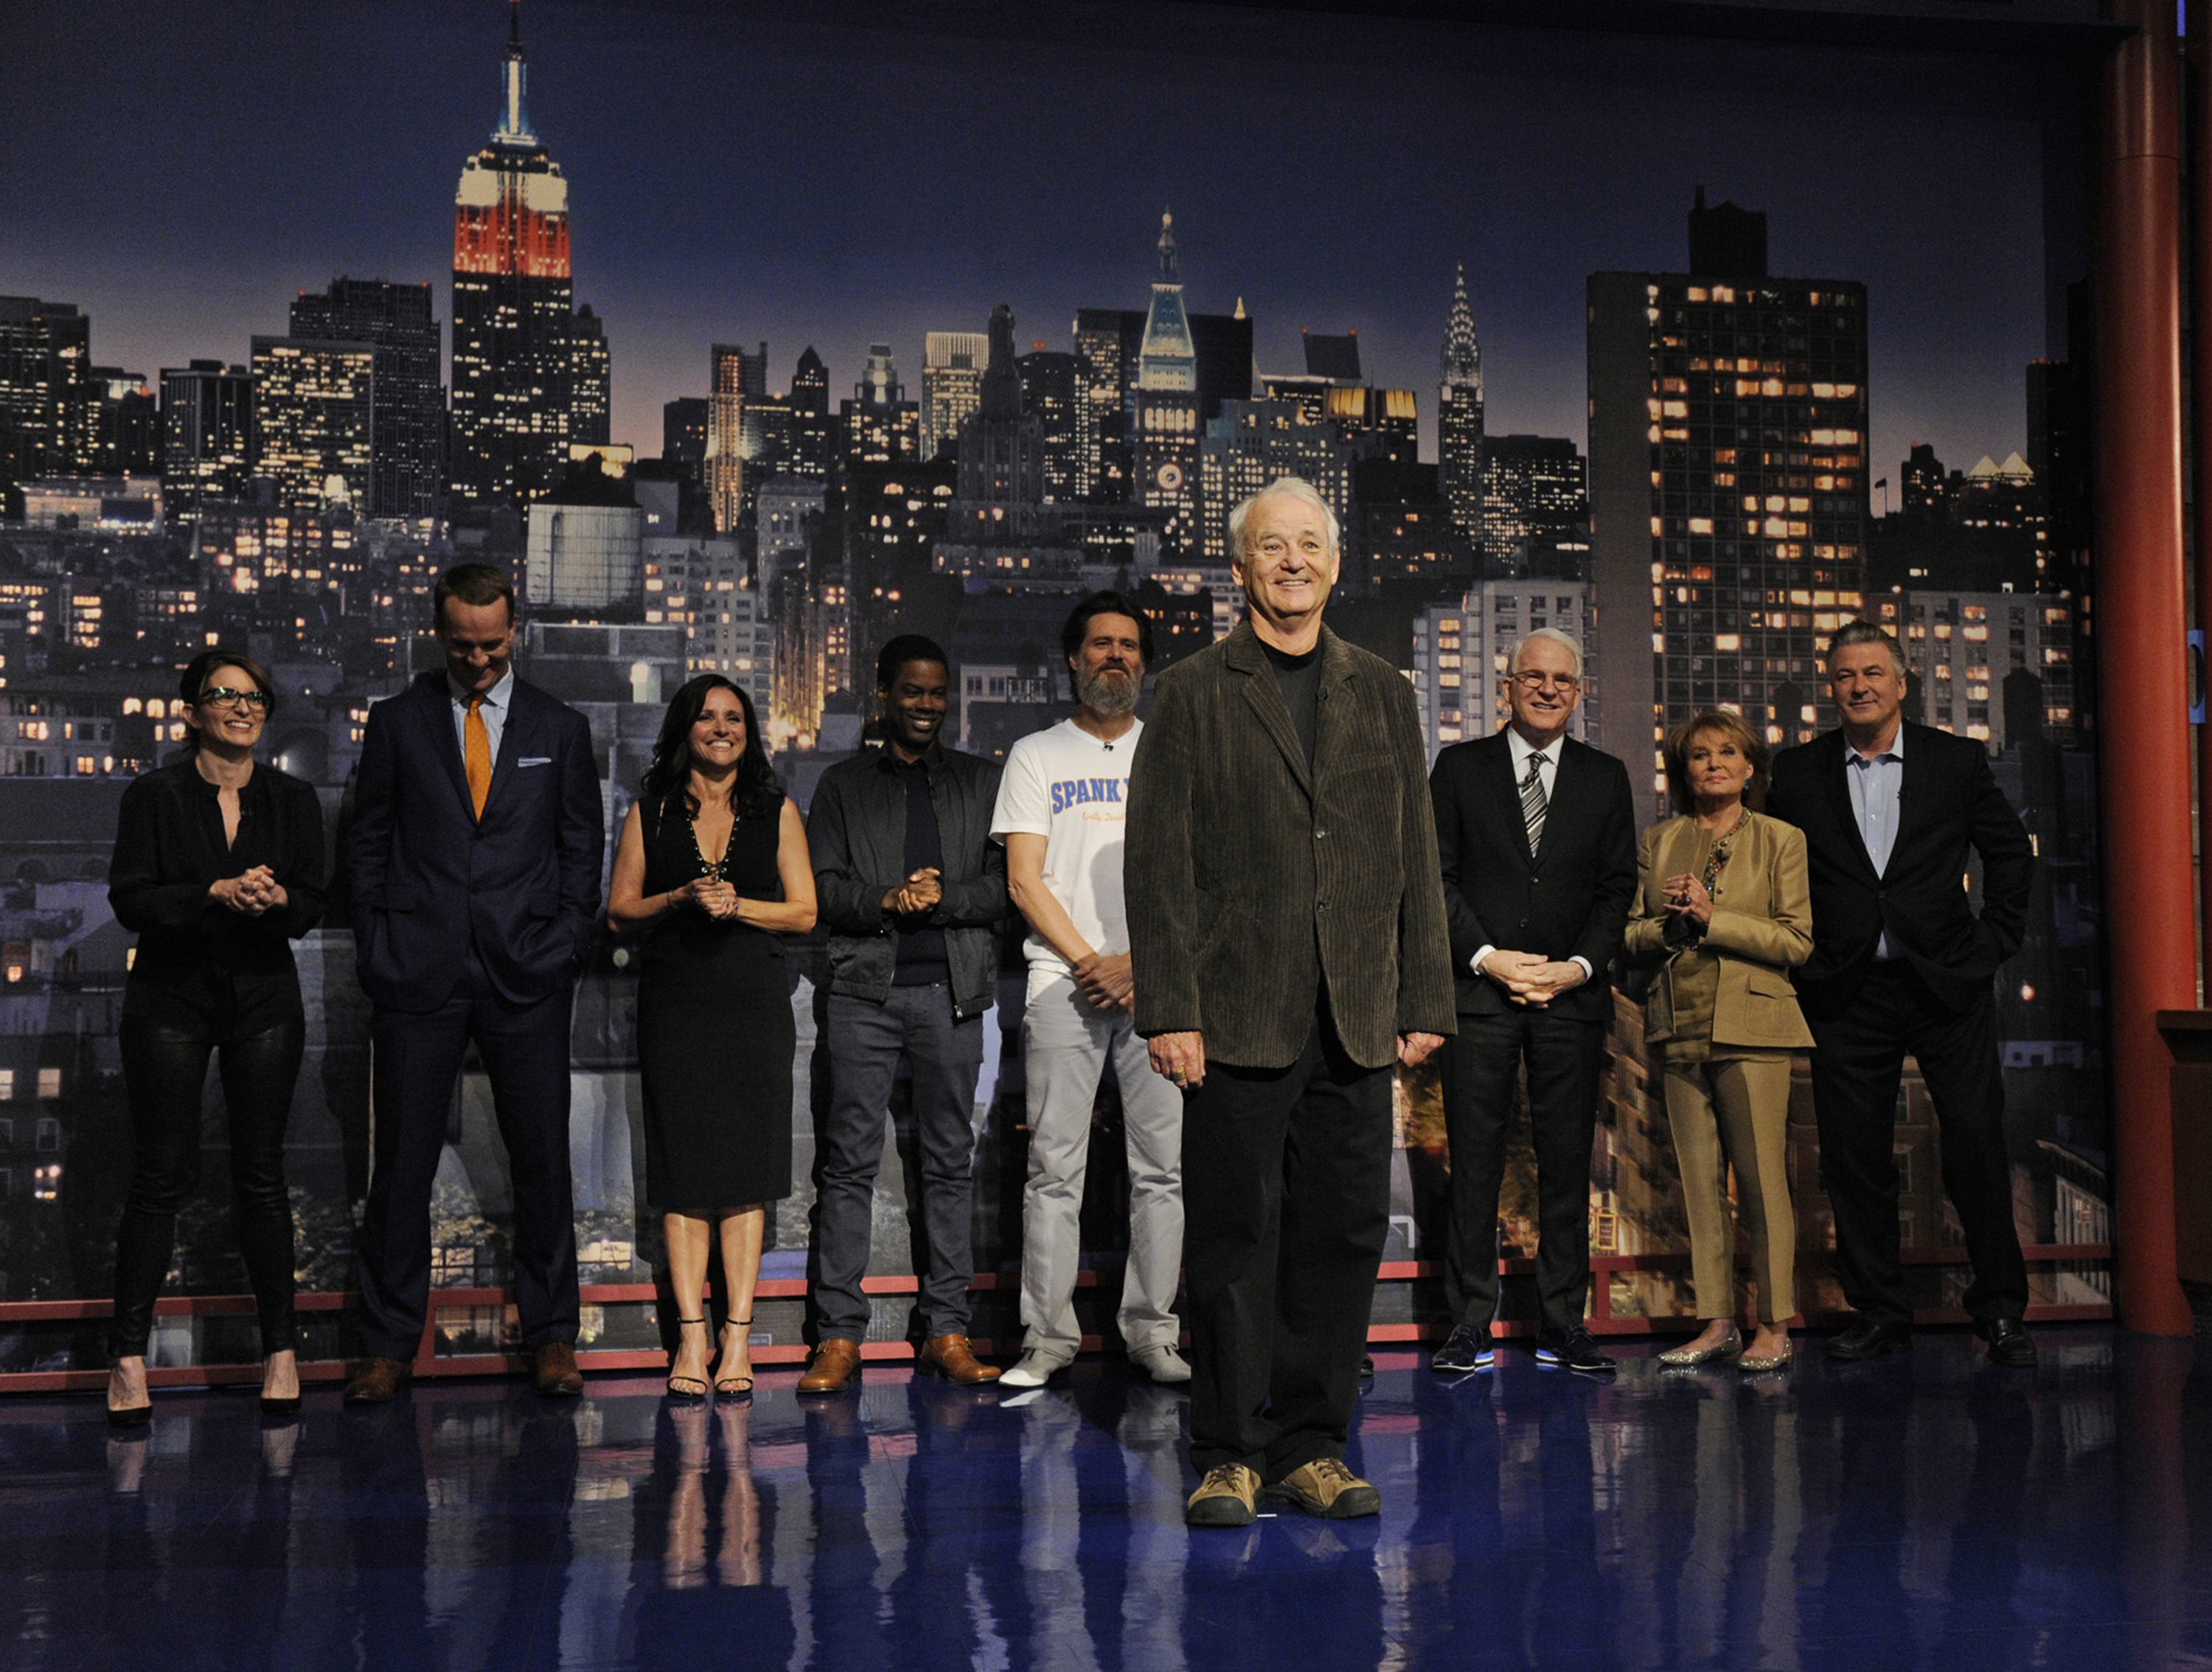 """Bill Murray, along with other celebrities, helps present the Top 10 List on the final broadcast of  """"Late Show with David Letterman"""" on Wednesday at the Ed Sullivan Theater in New York."""